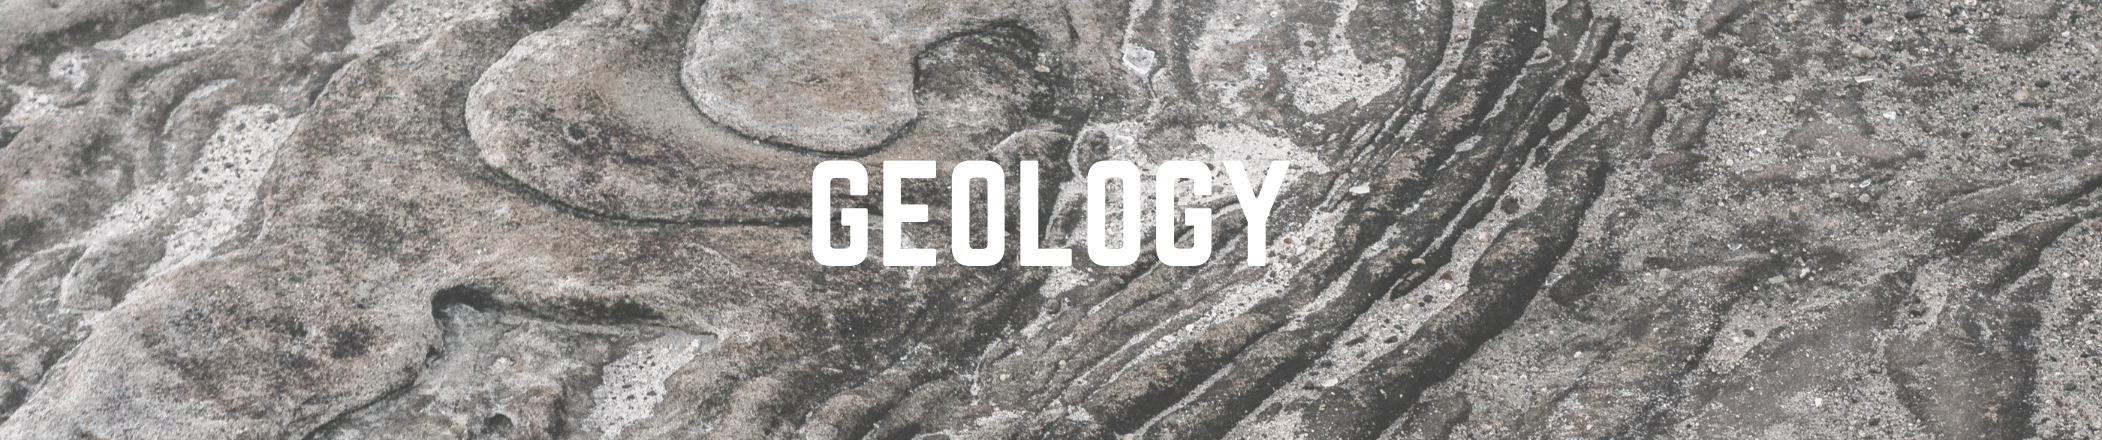 Geology text on an image background